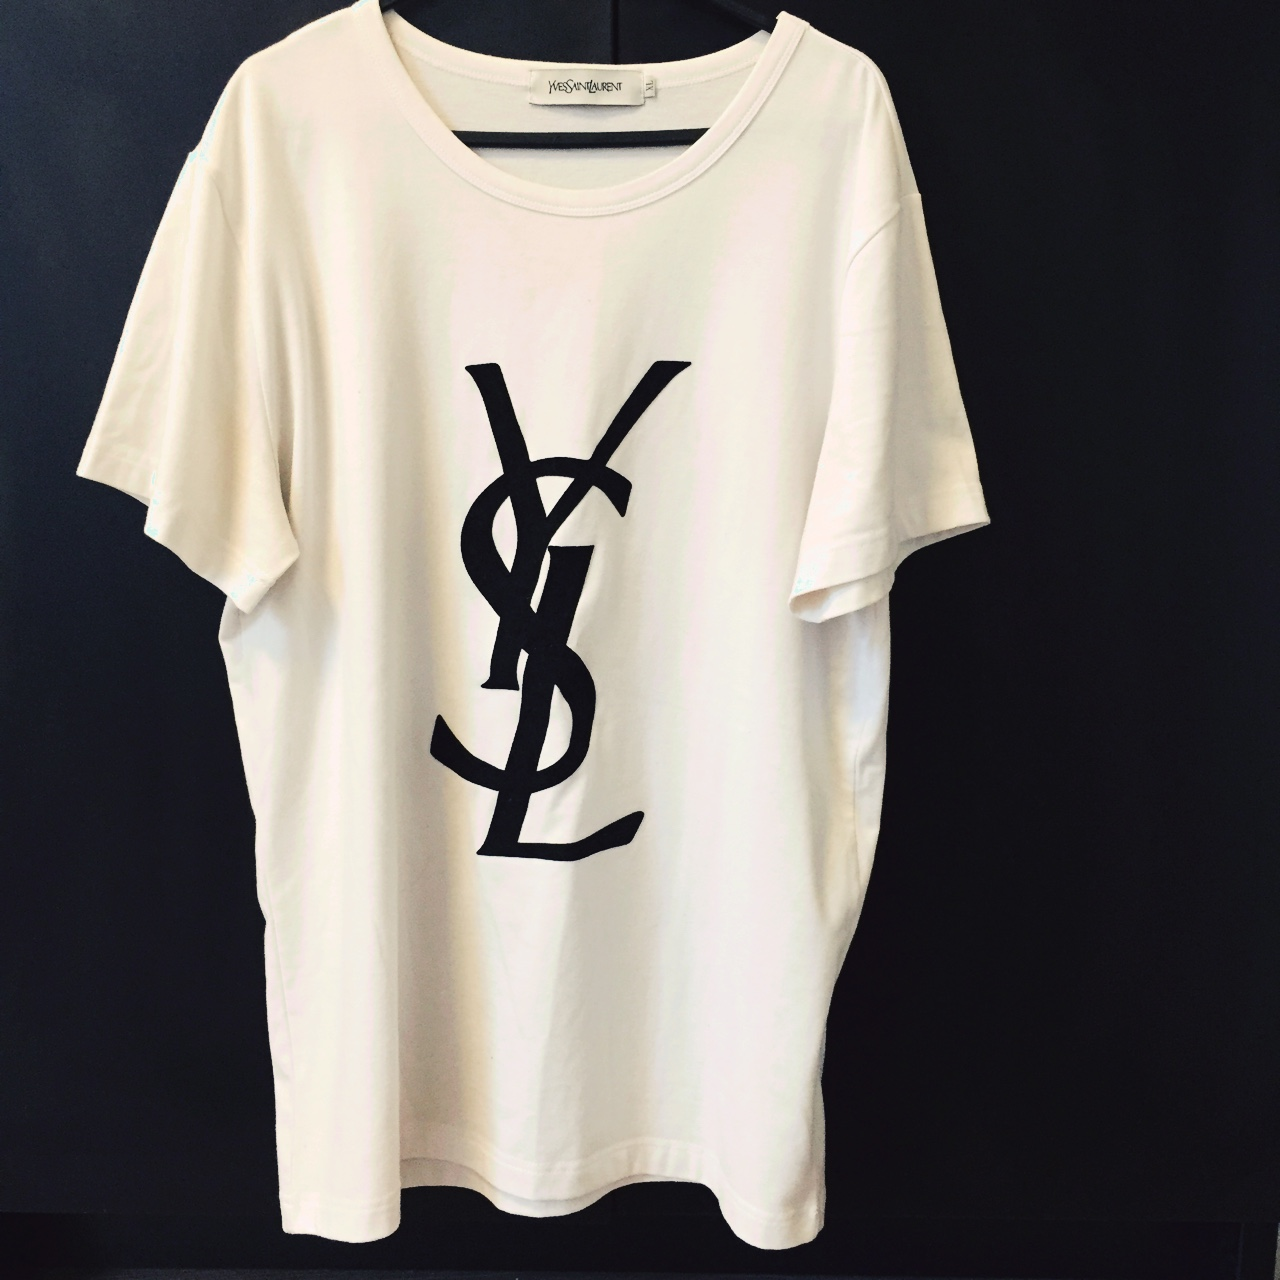 Yves Saint Laurent logo t.